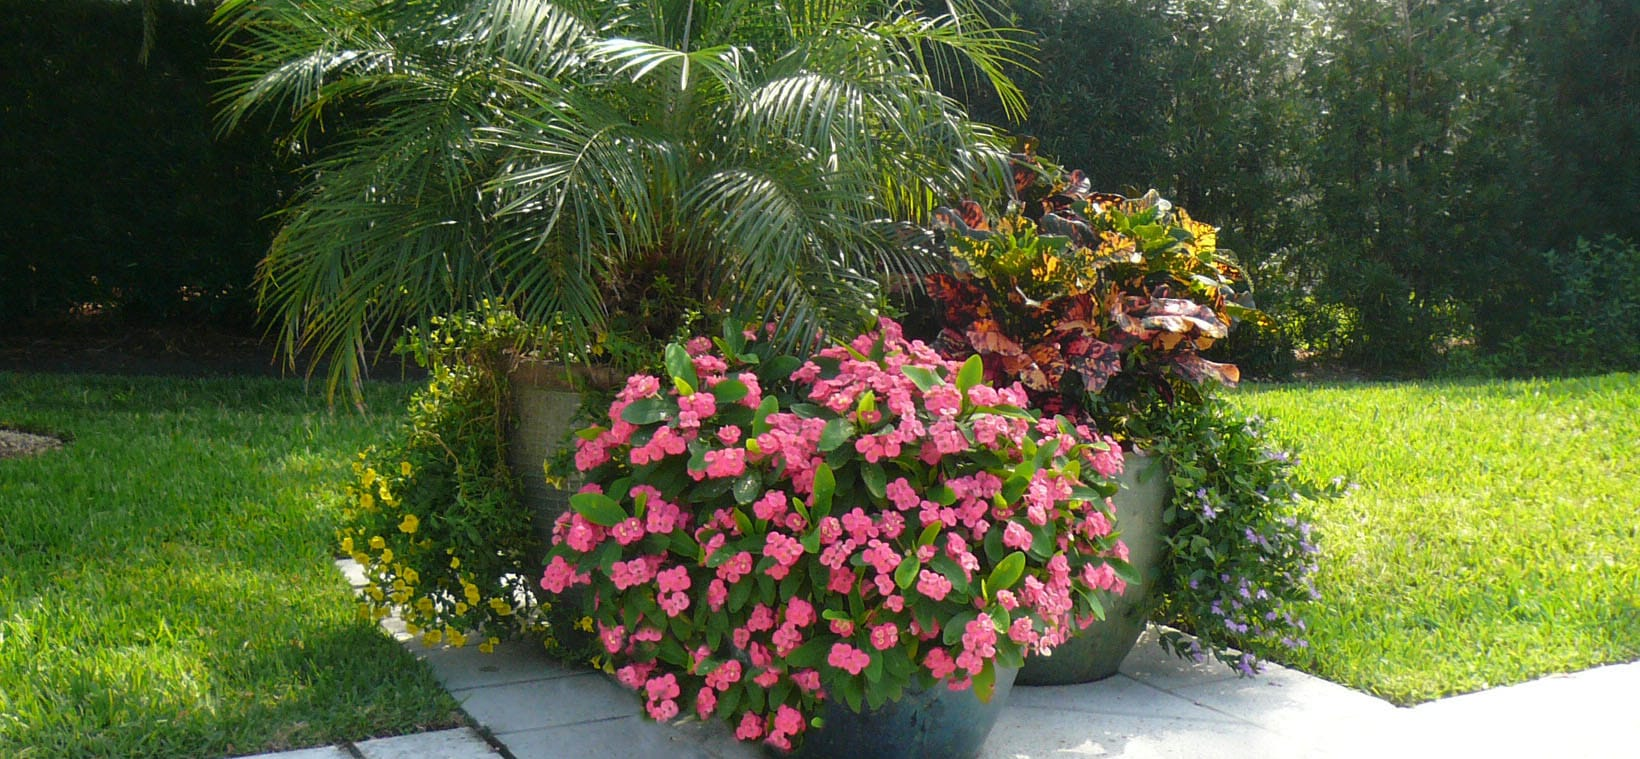 aiello-landscape_potted-plants-backyard